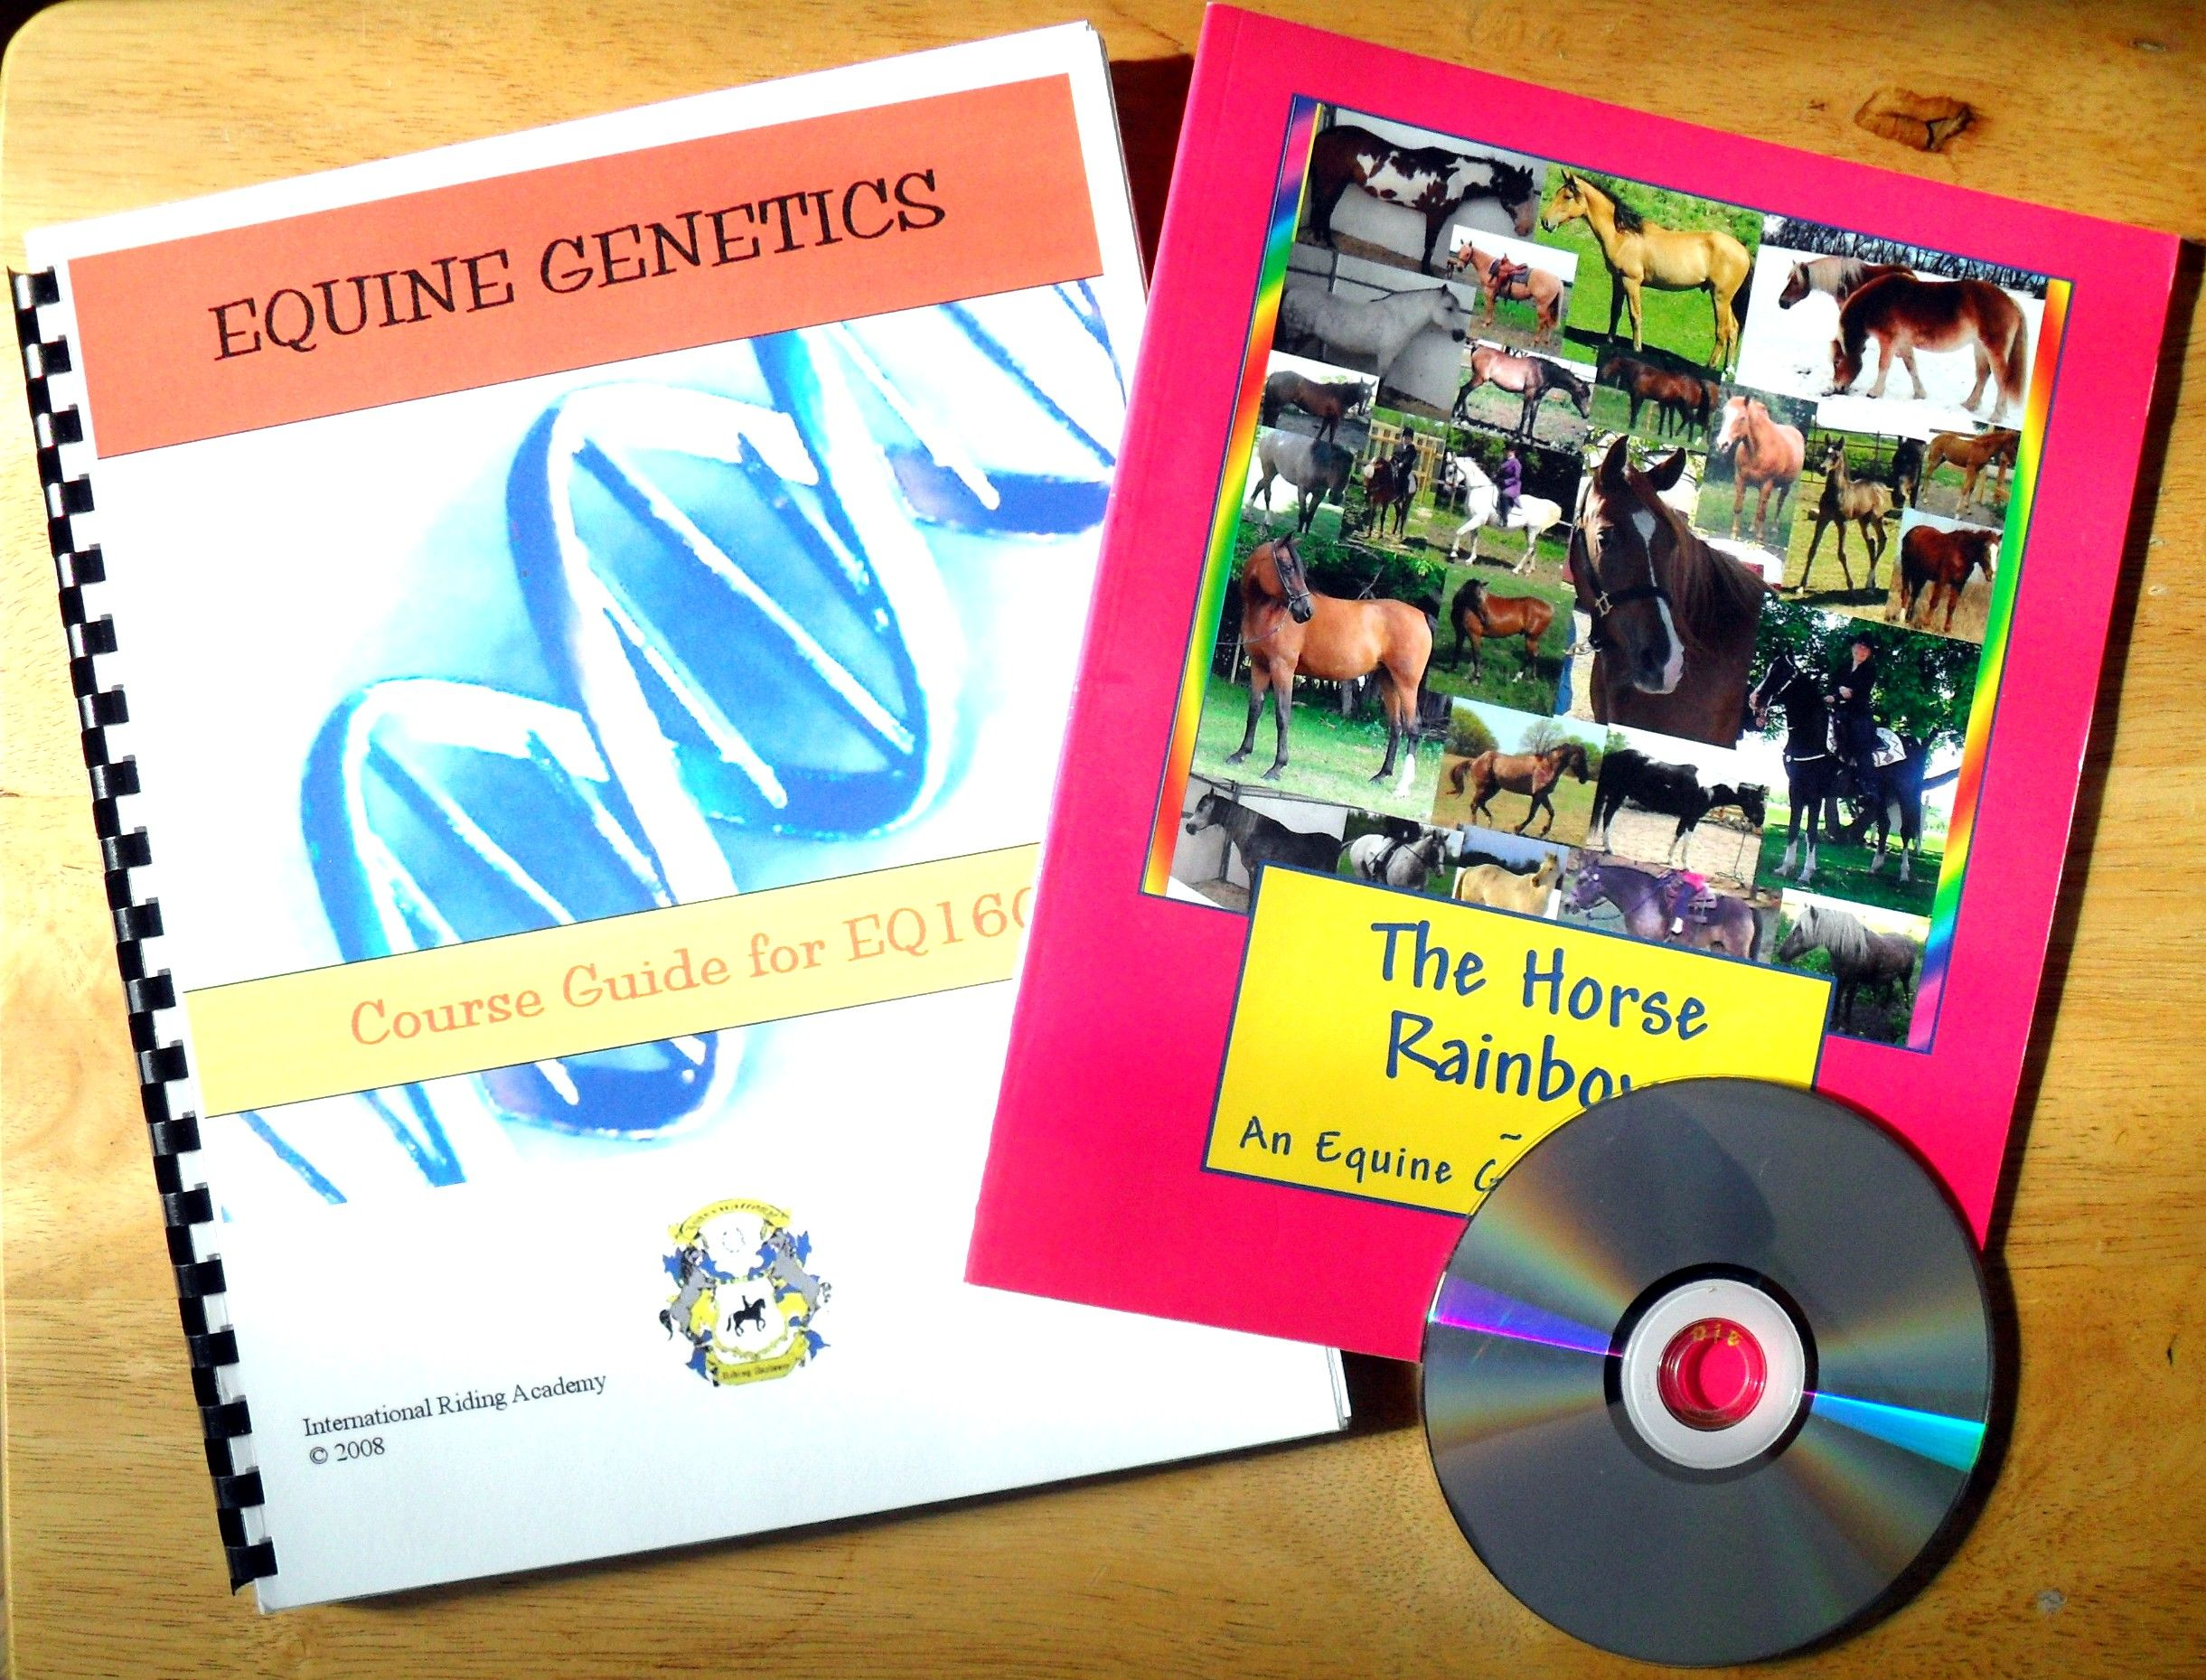 Equine Genetics Needed For Rider 3 Via Correspondence